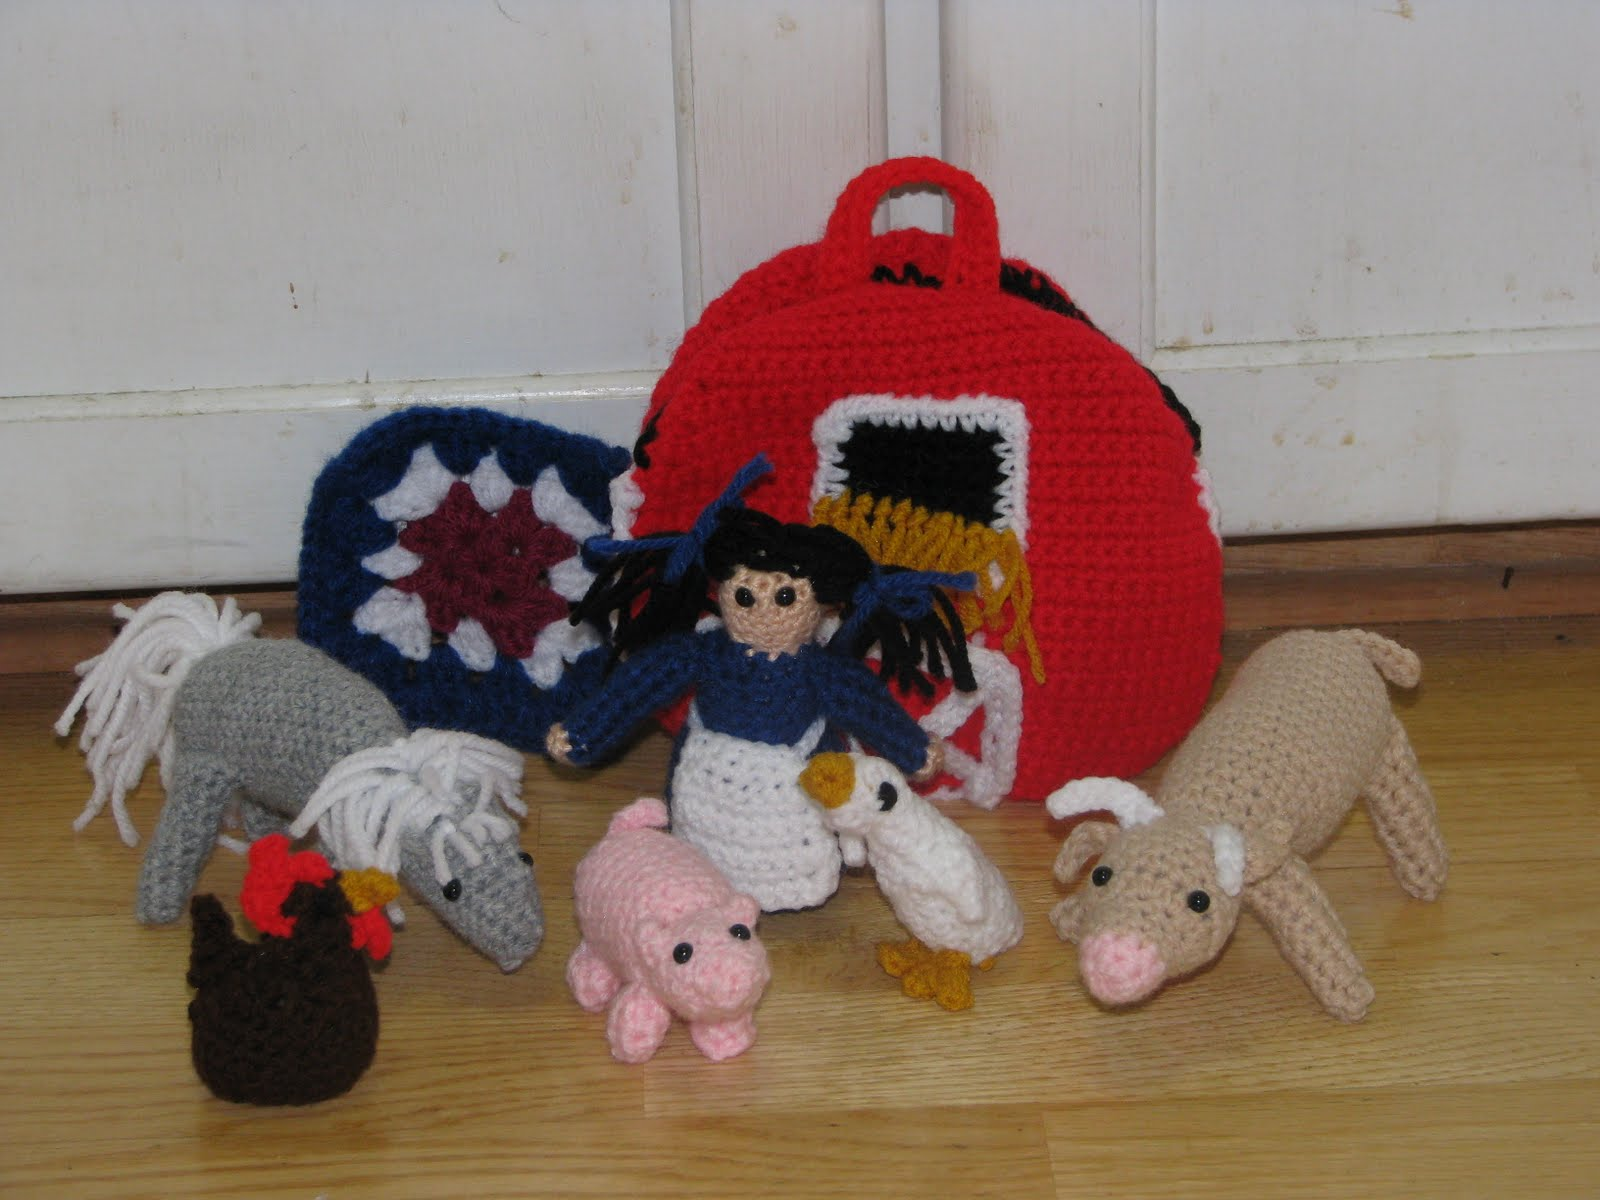 Free Crochet Patterns For Boy Toys : FIND ME ALL THE CROCHET PATTERNS FOR TOYS FOR BOYS ...